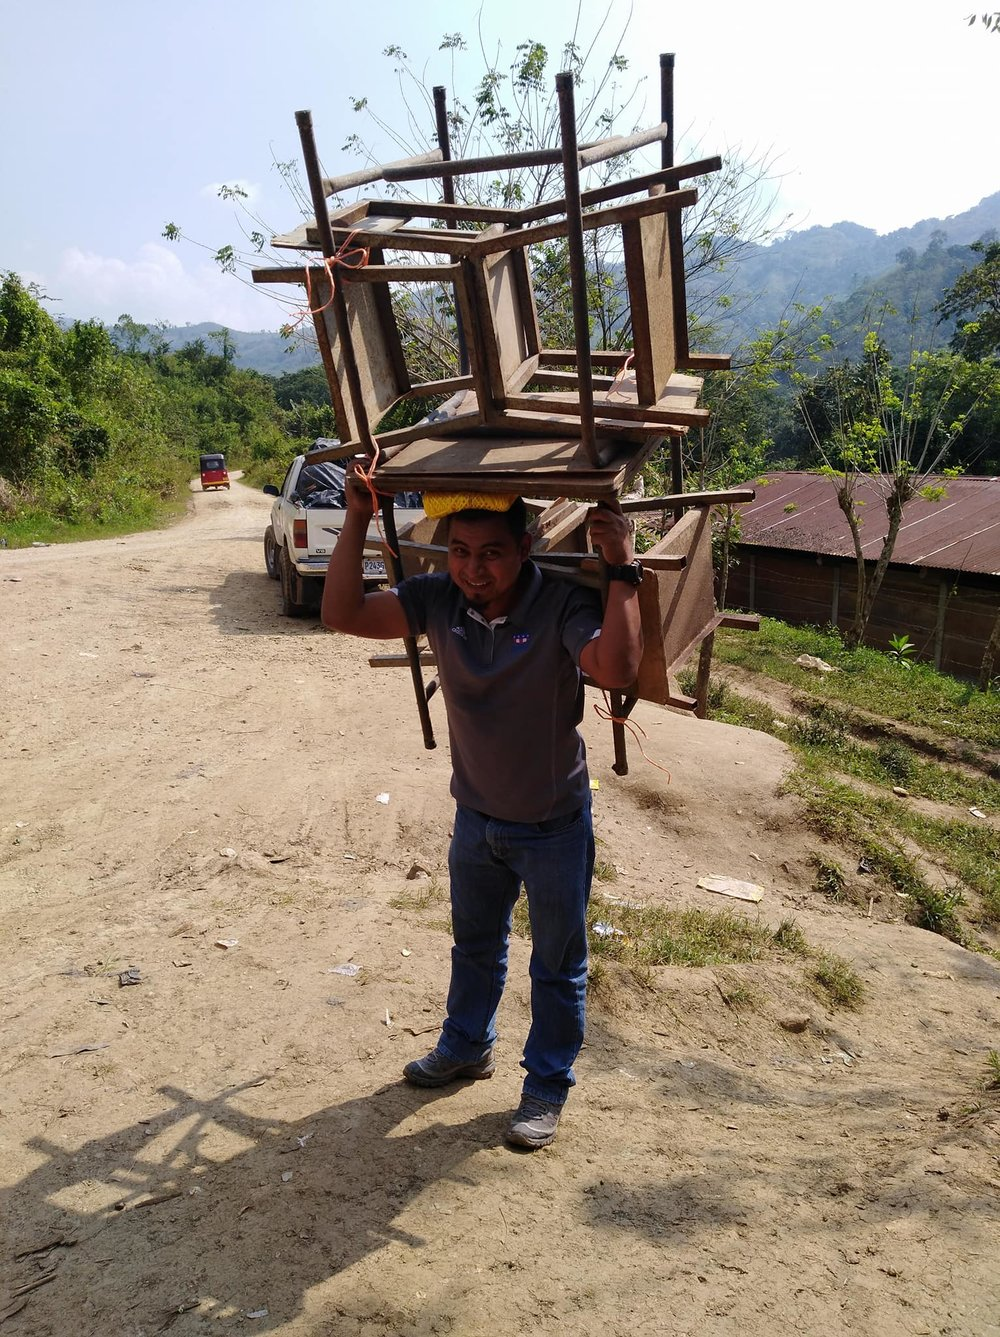 volunteers carried the desks up the mountain and across a river to bring them to the school.